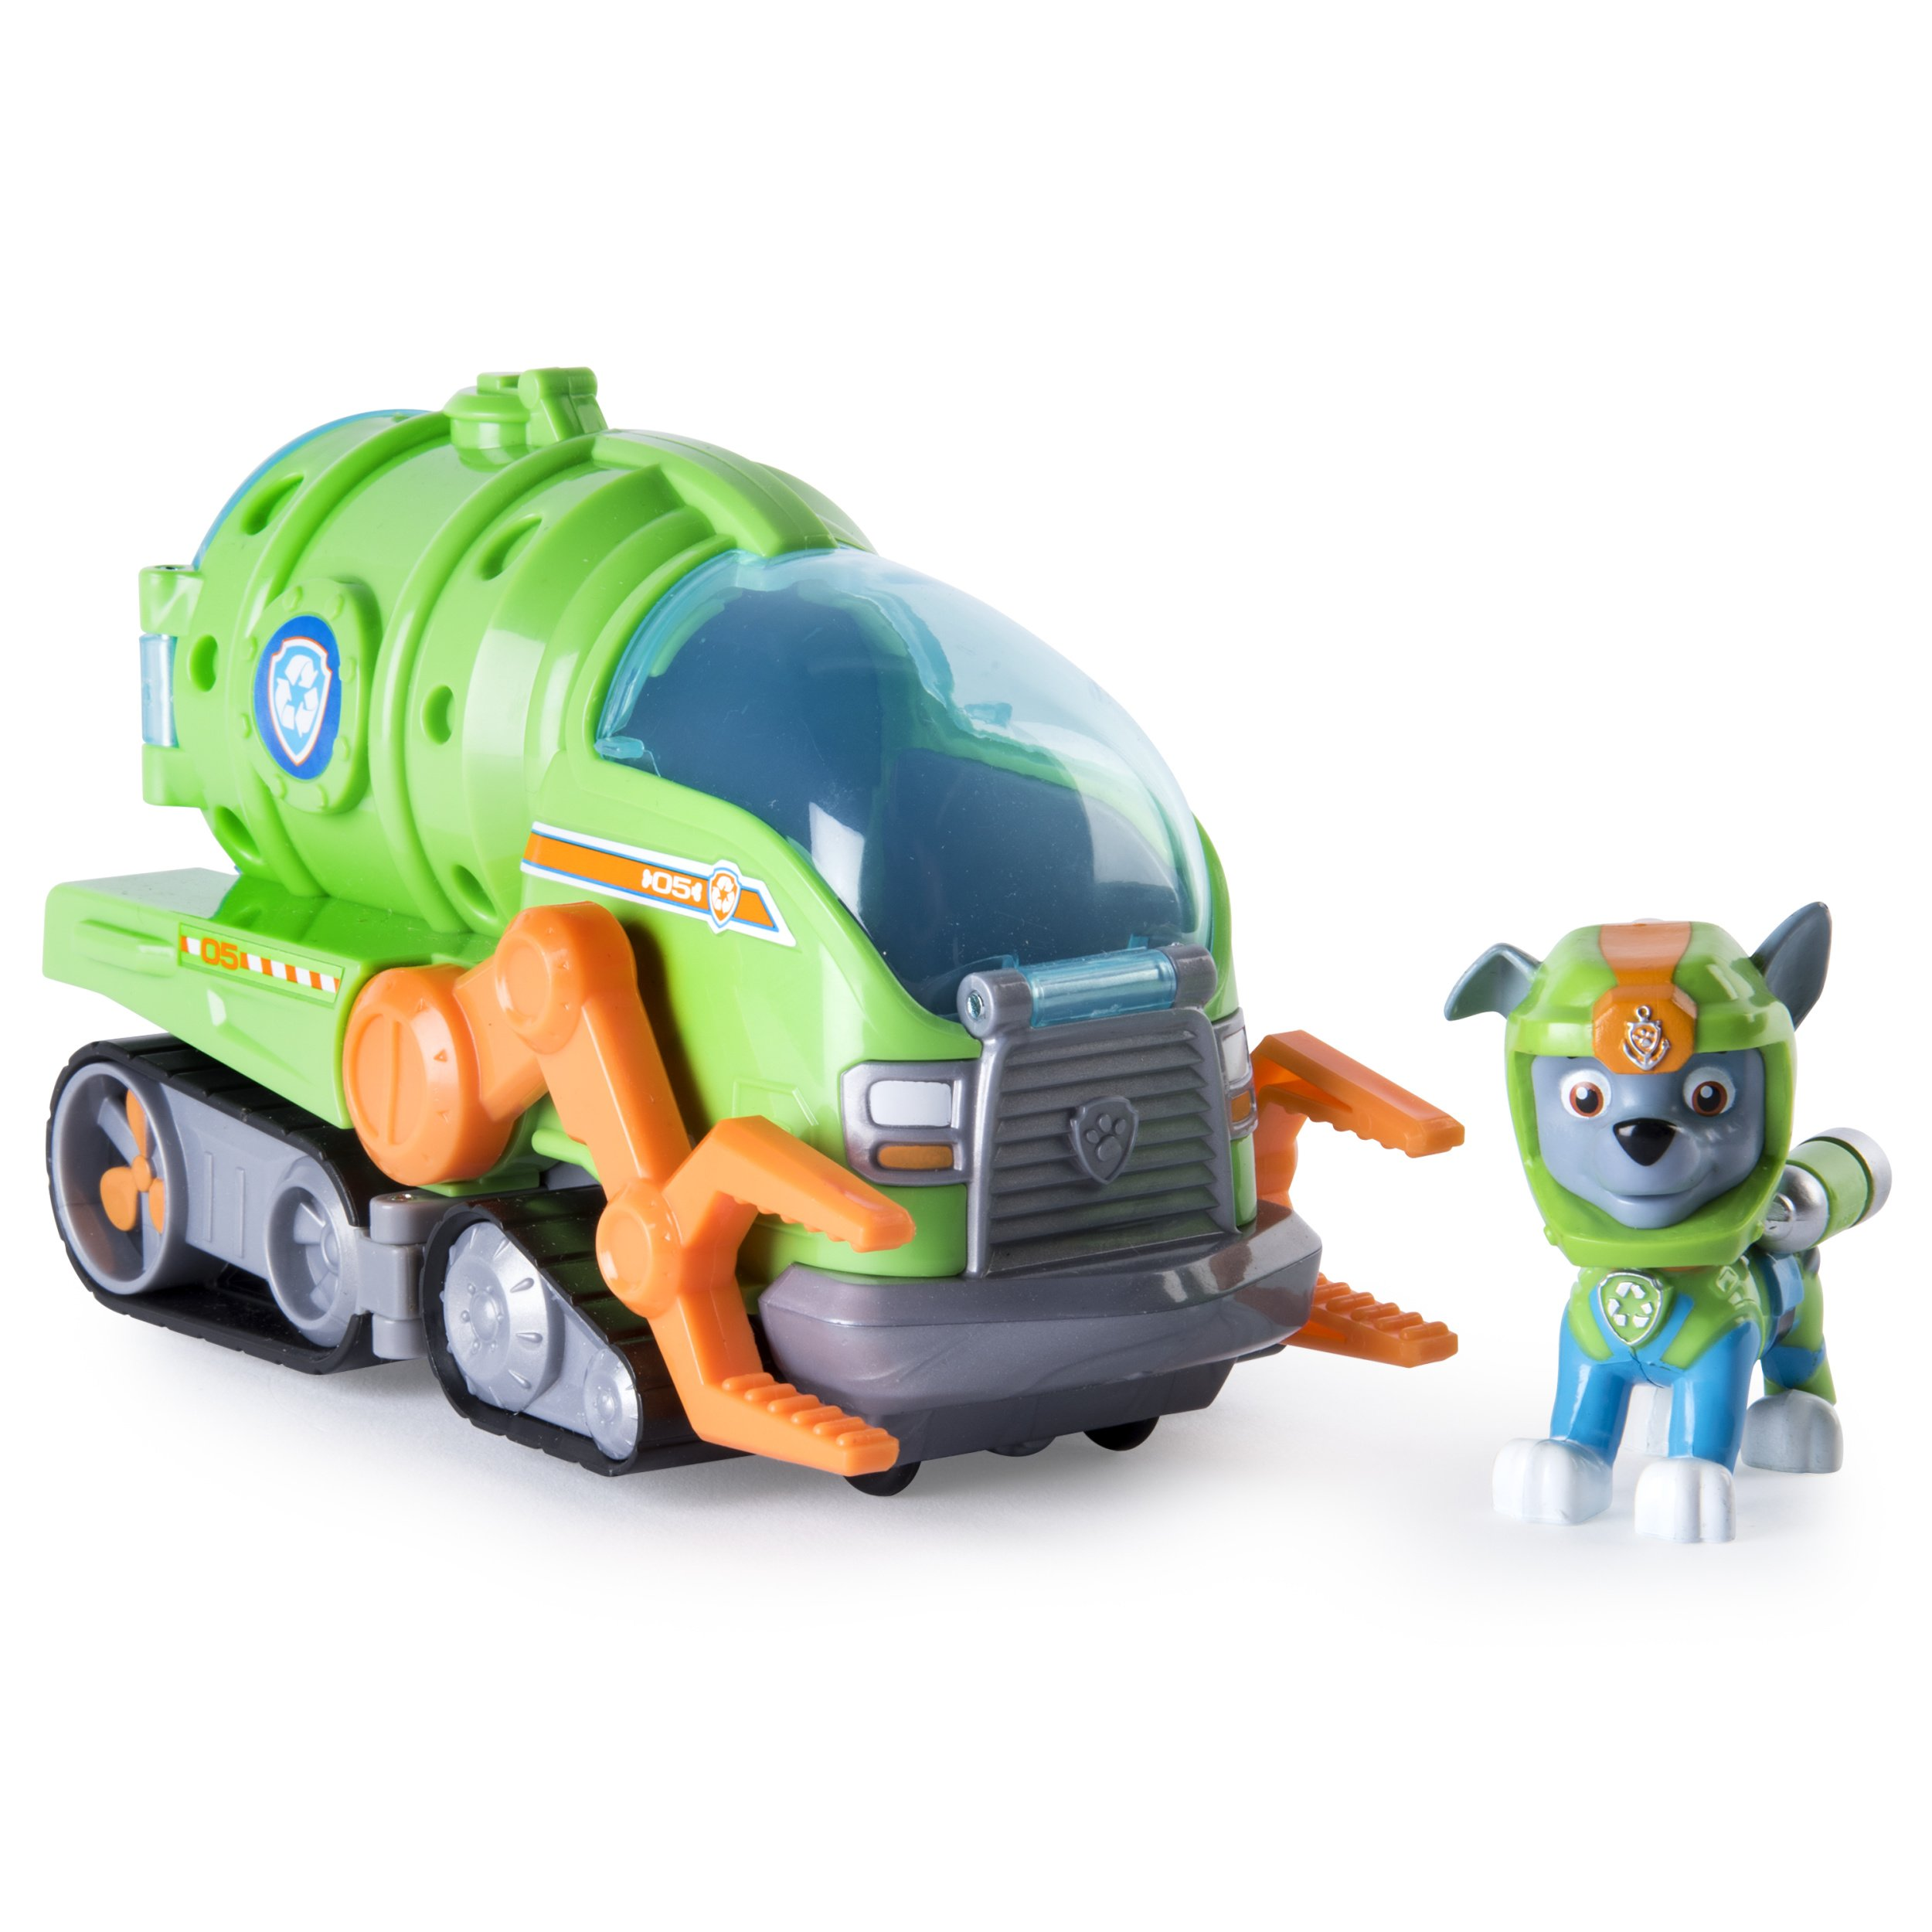 Paw Patrol - Rocky's Transforming Sea Patrol Vehicle by Paw Patrol